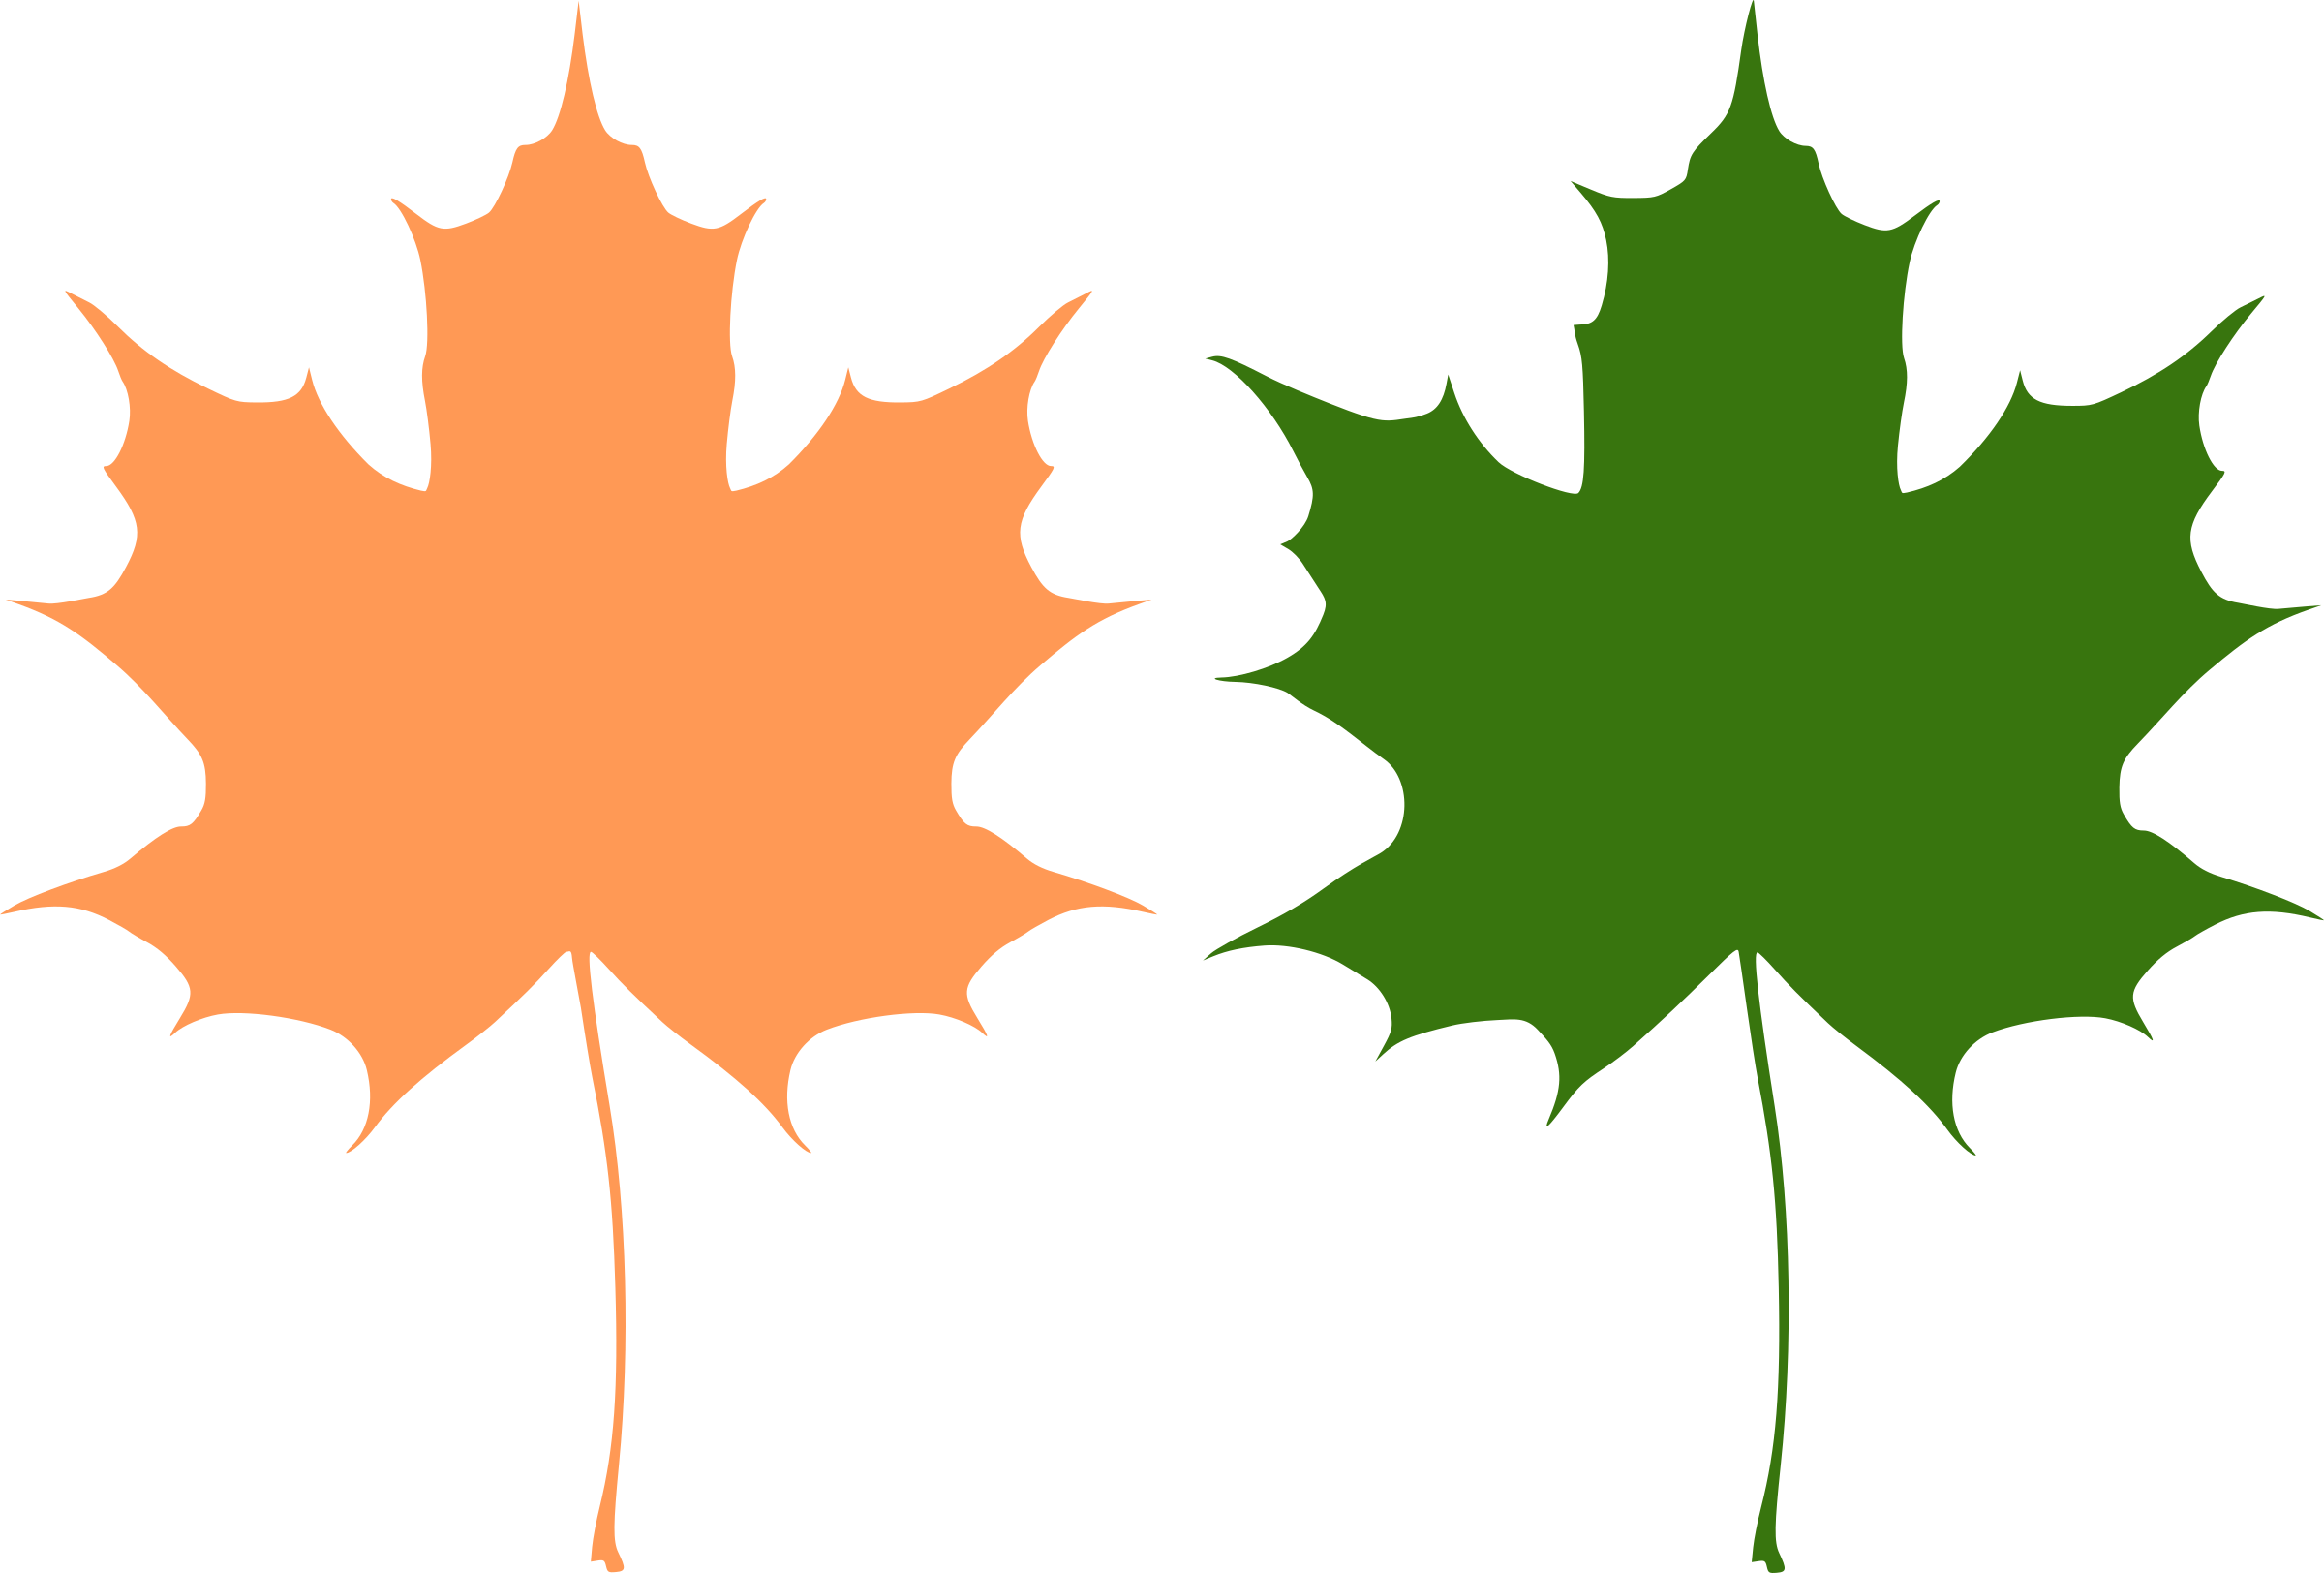 Maple leaves by rones